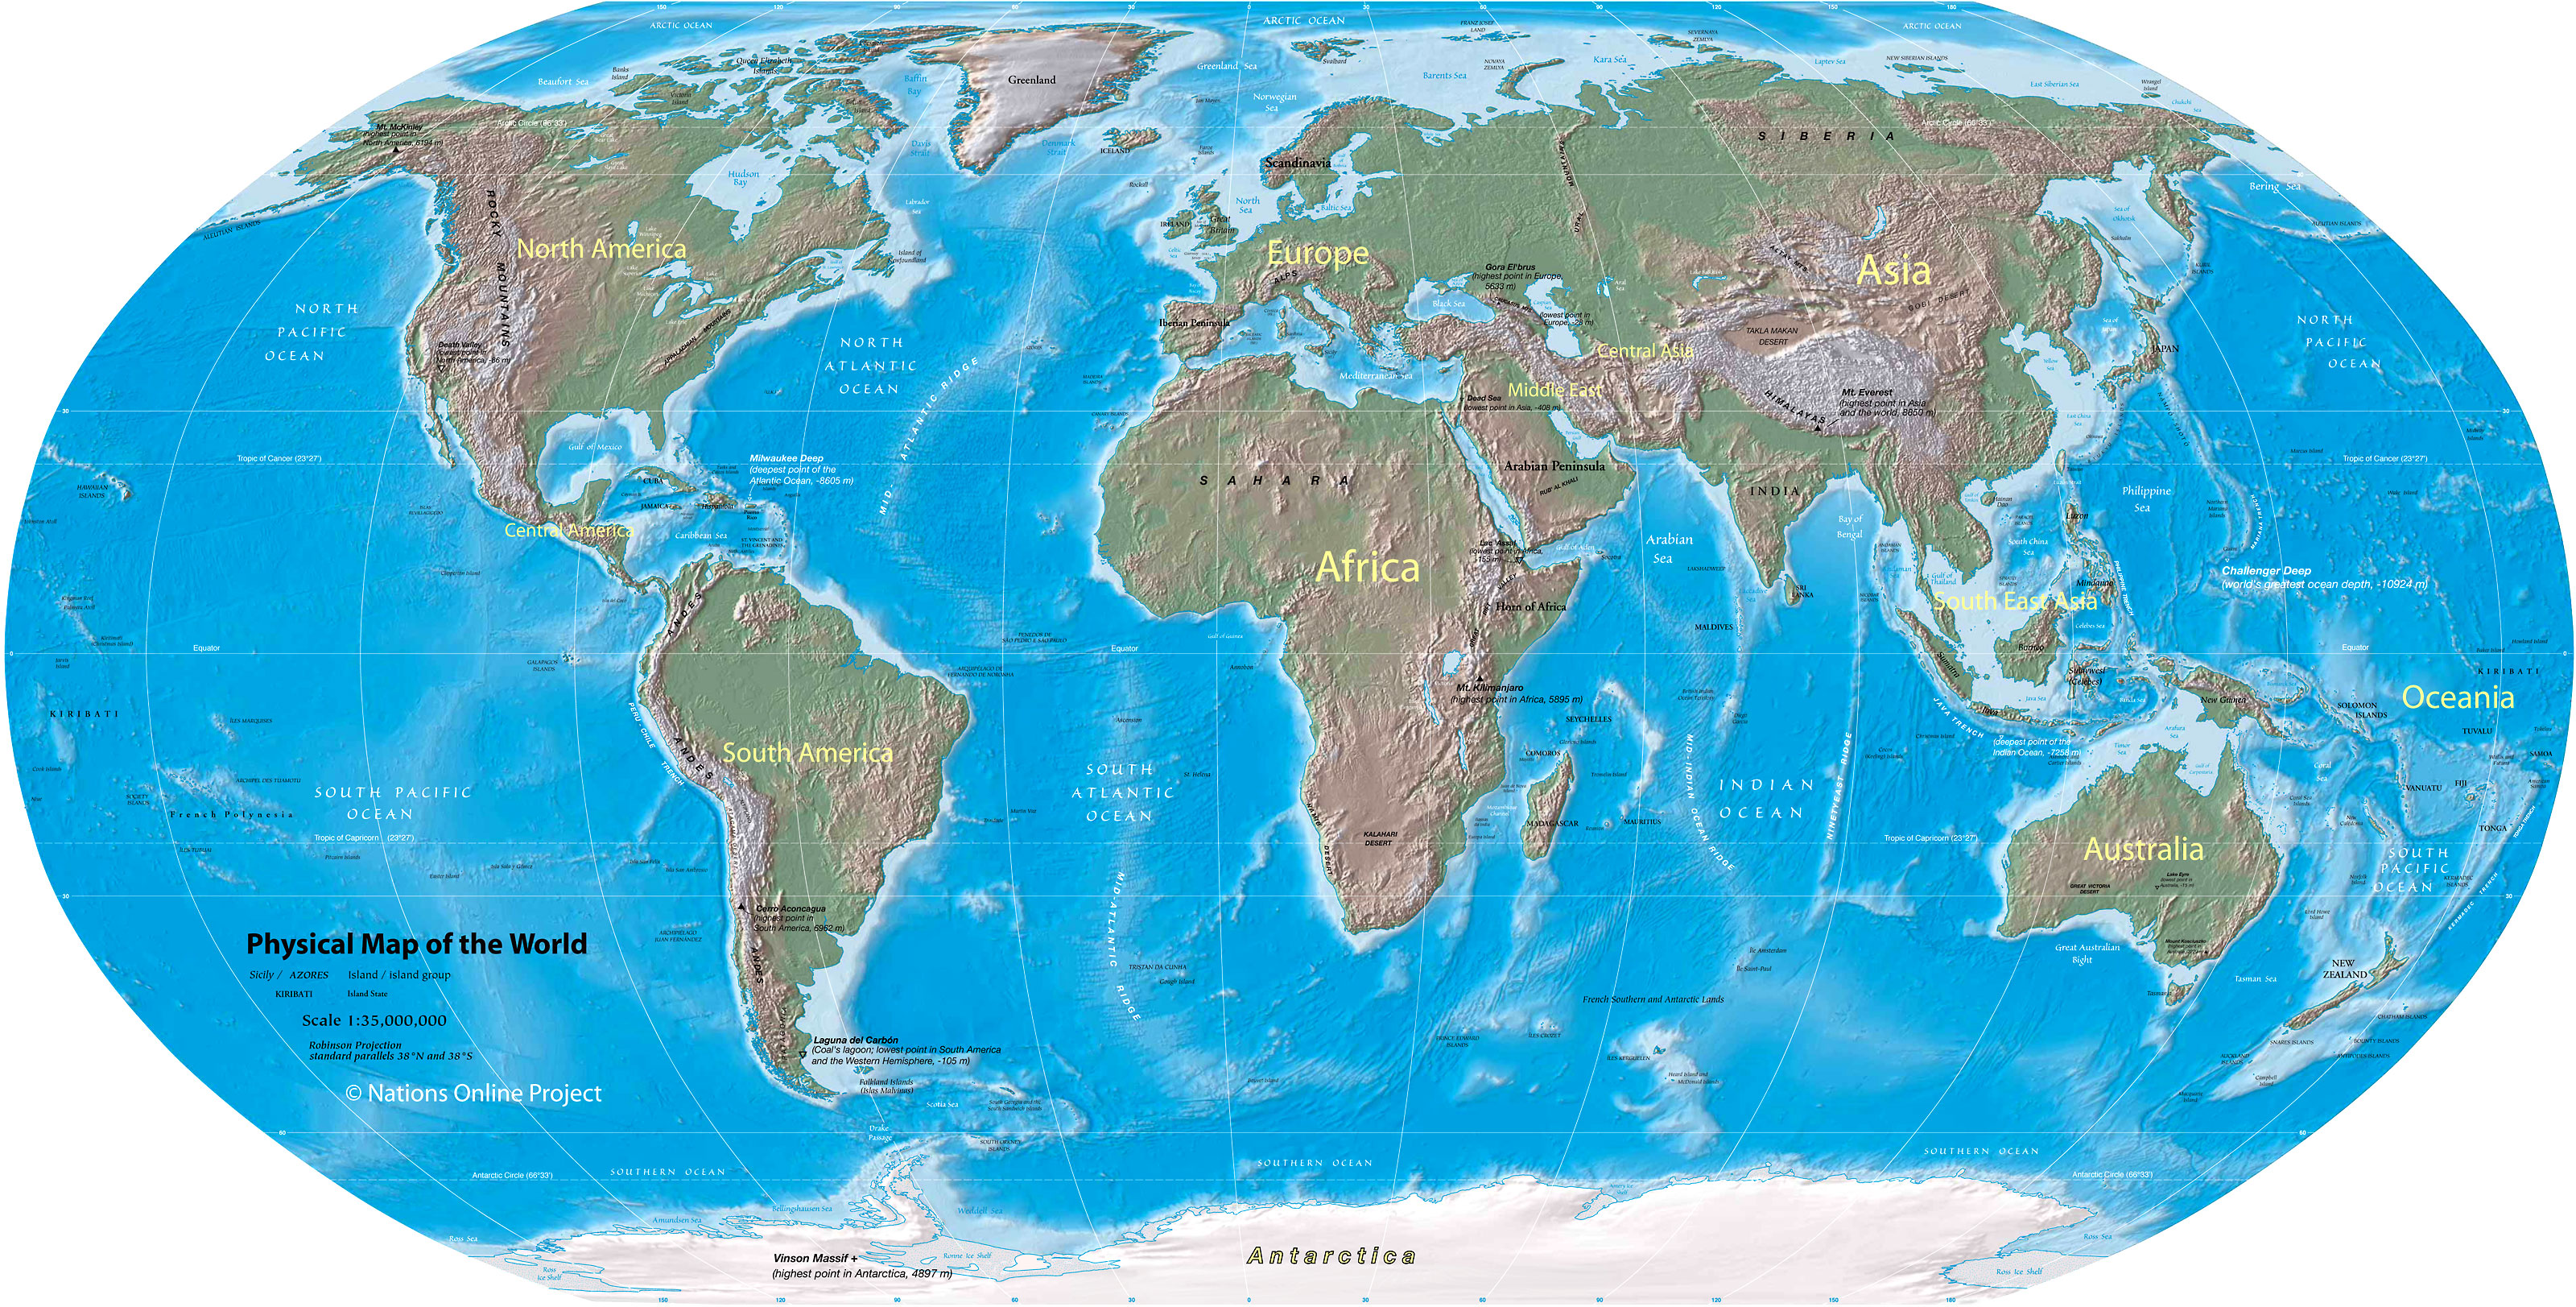 World Map Hemispheres Countries.  World Map Physical of the Nations Online Project